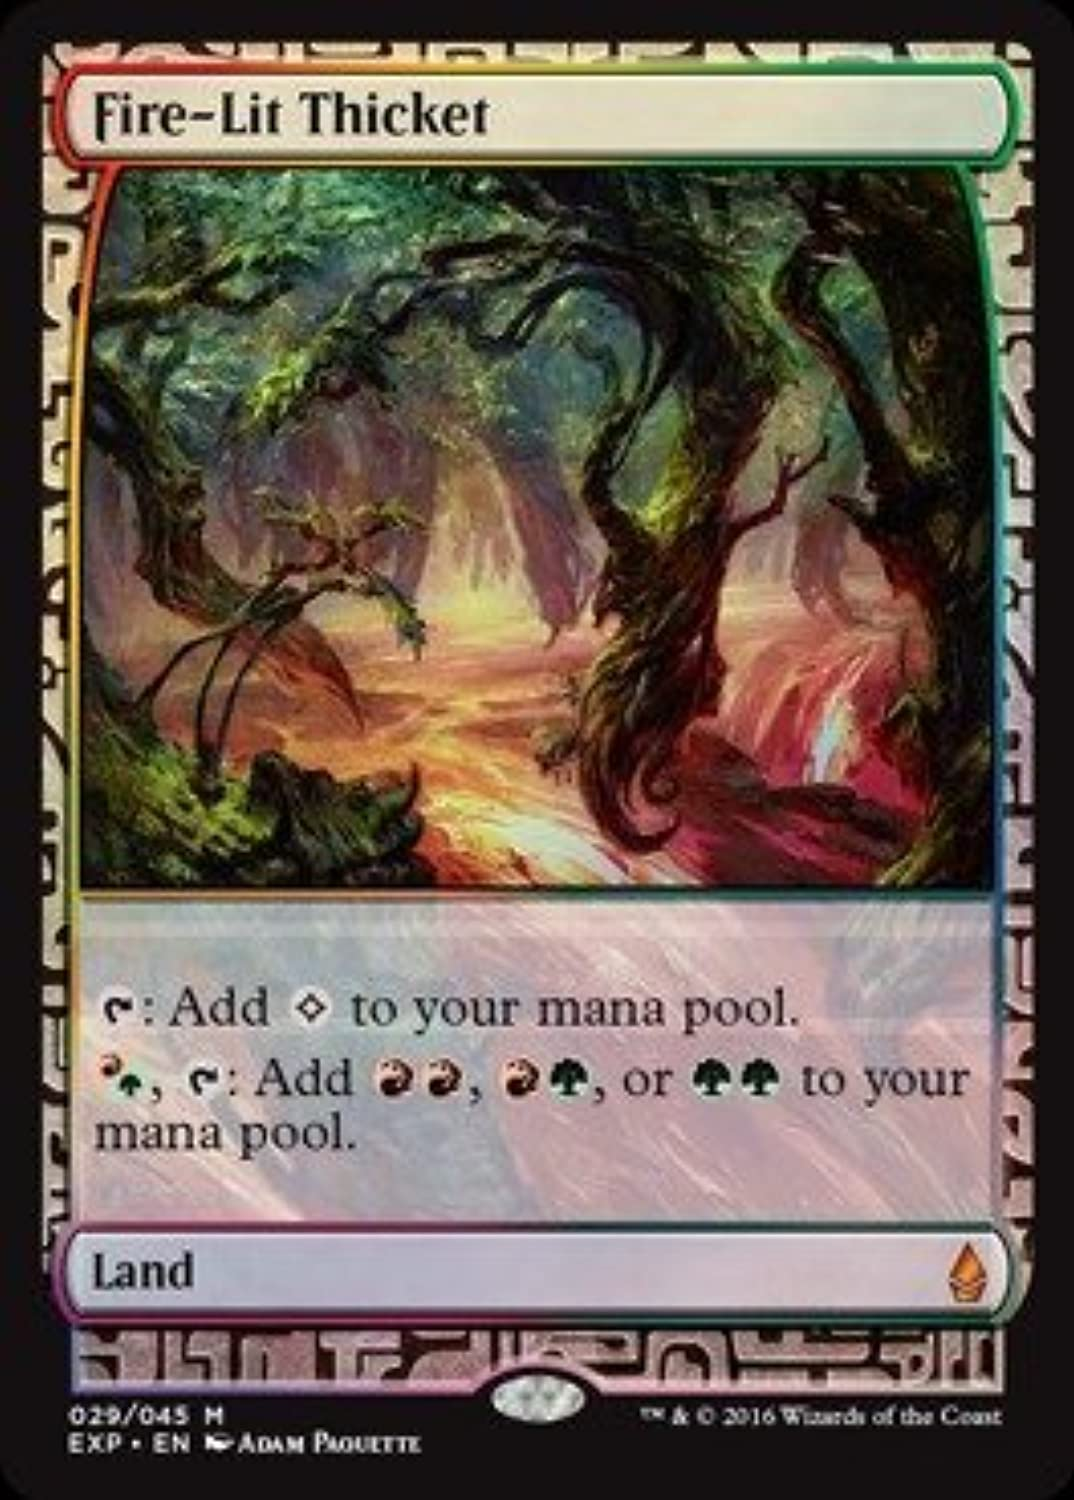 Magic  the Gathering - Fire-Lit Thicket - Expedition Lands - Foil by Magic  the Gathering B01MXBT44I Ruf zuerst   Zürich